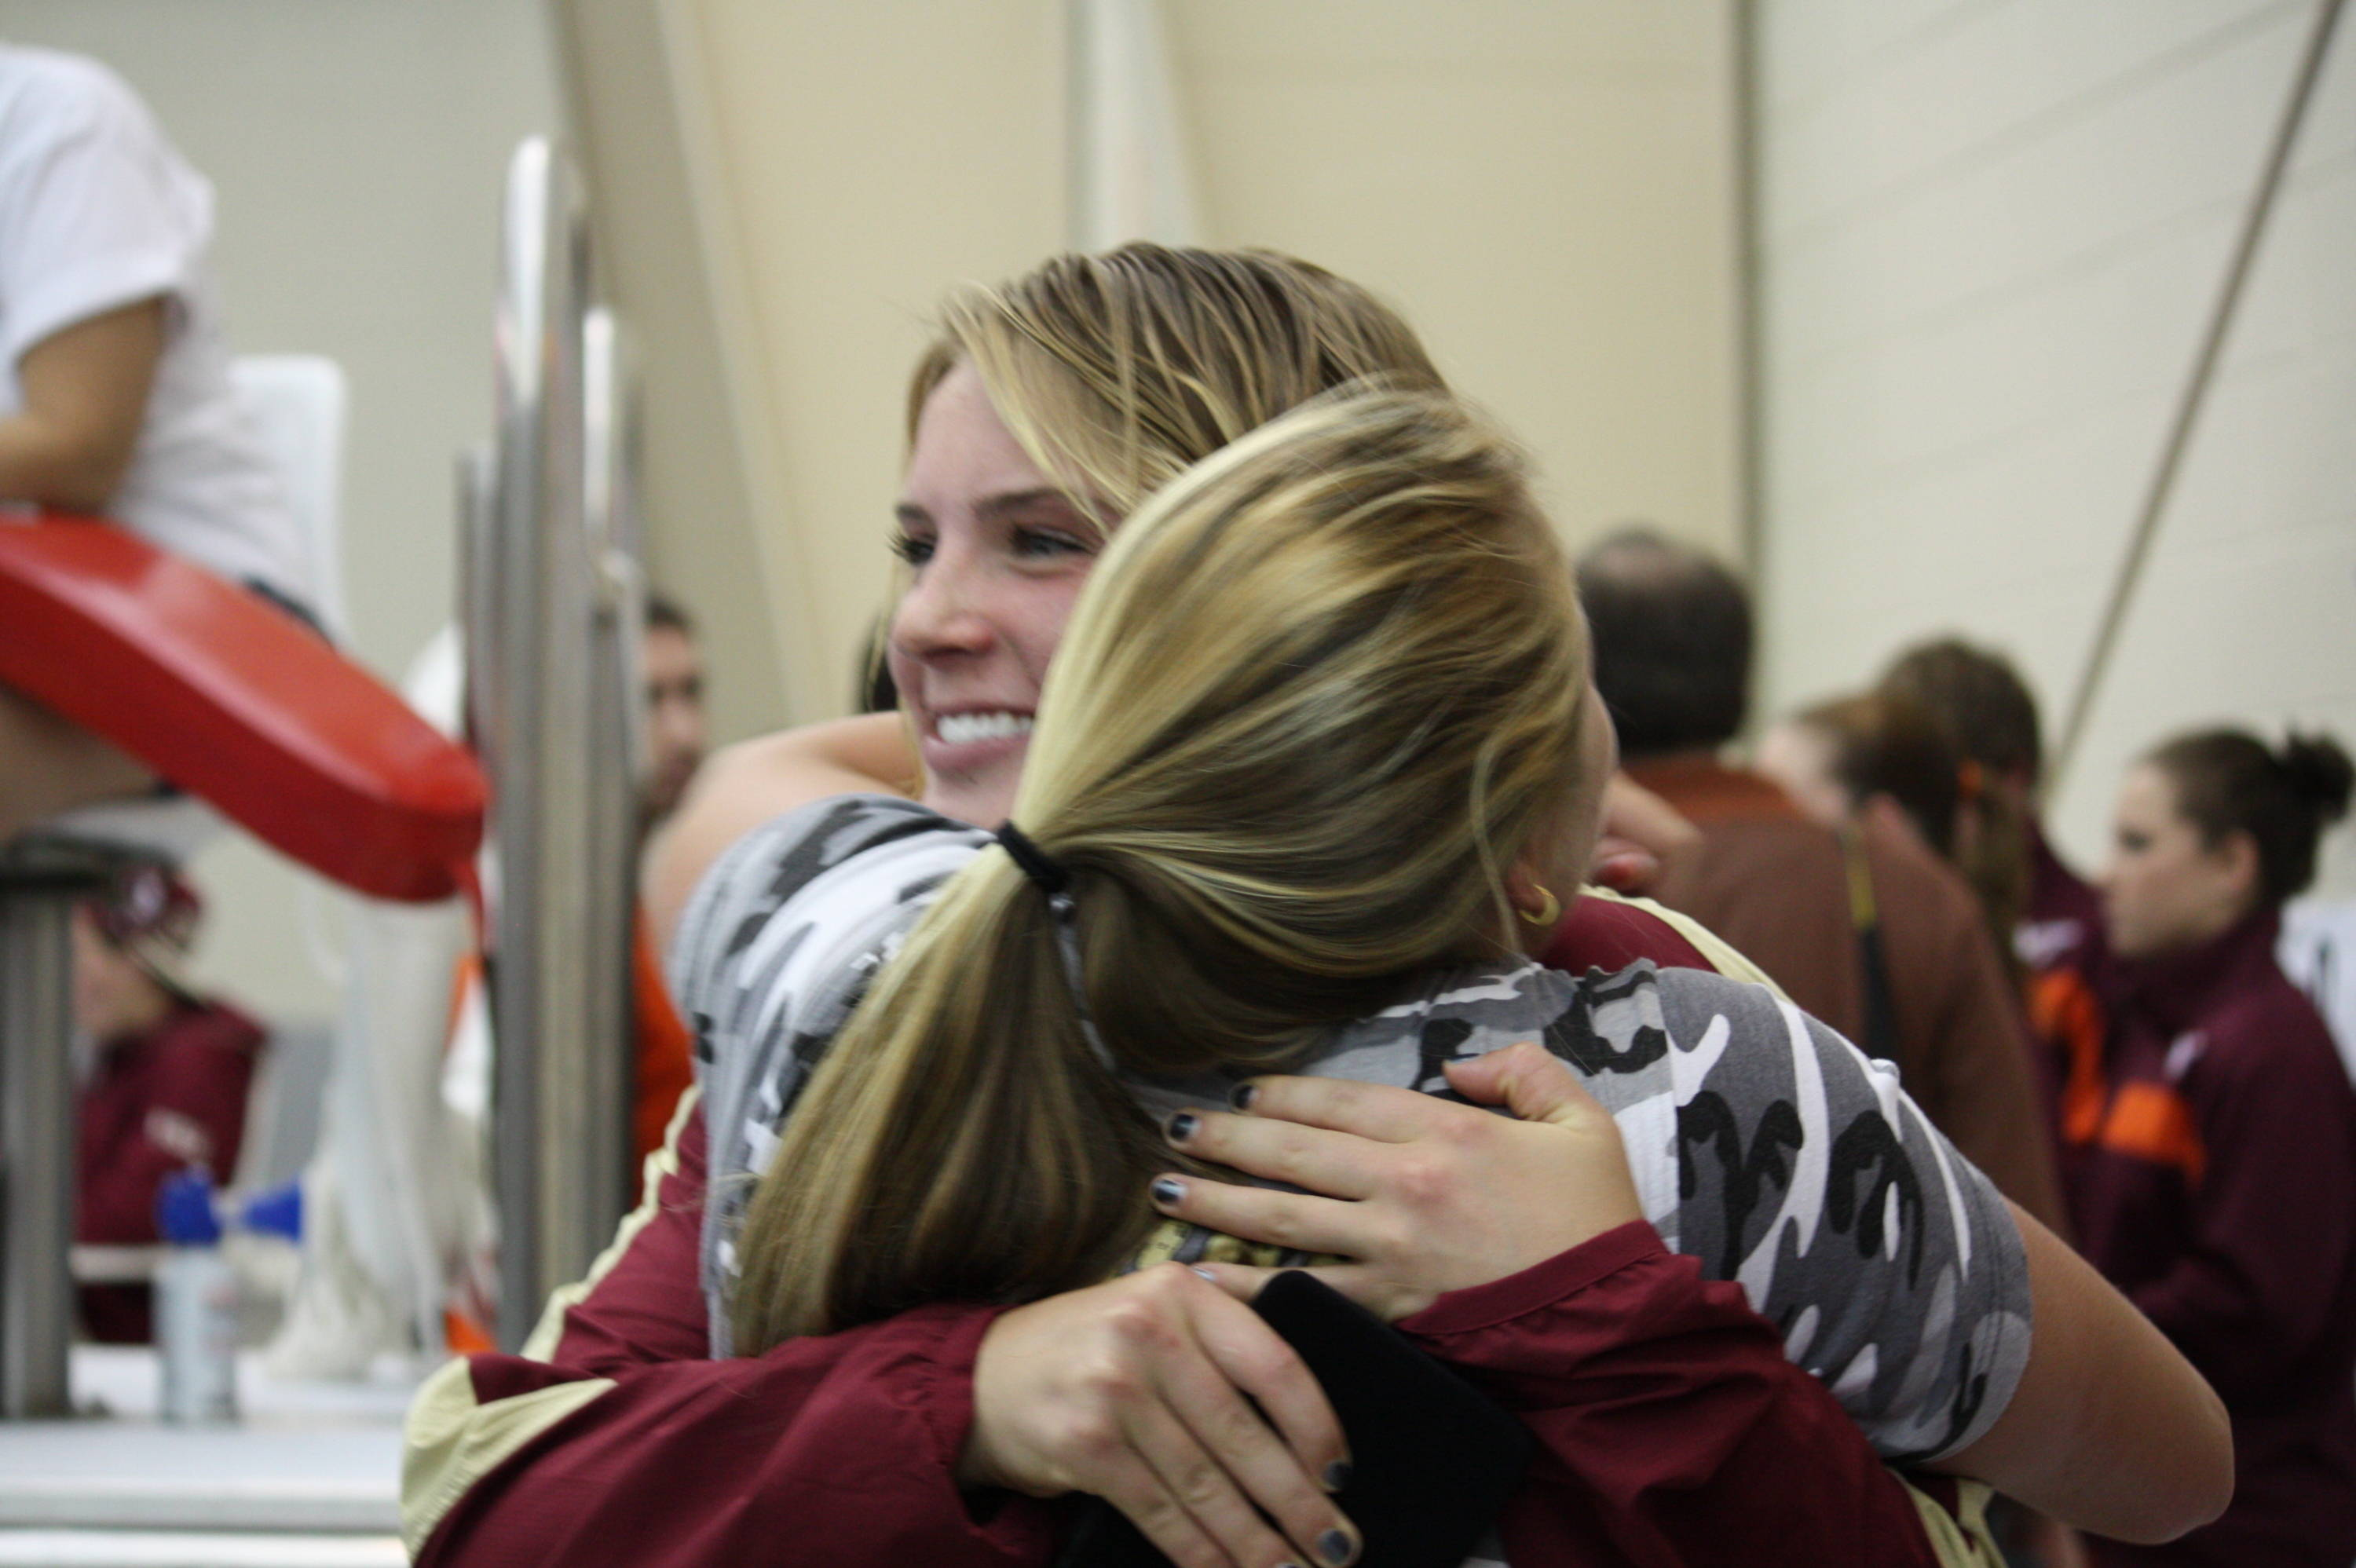 Junior Ariel Rittenhouse congratulates Katrina Young after she's awarded the gold medal.